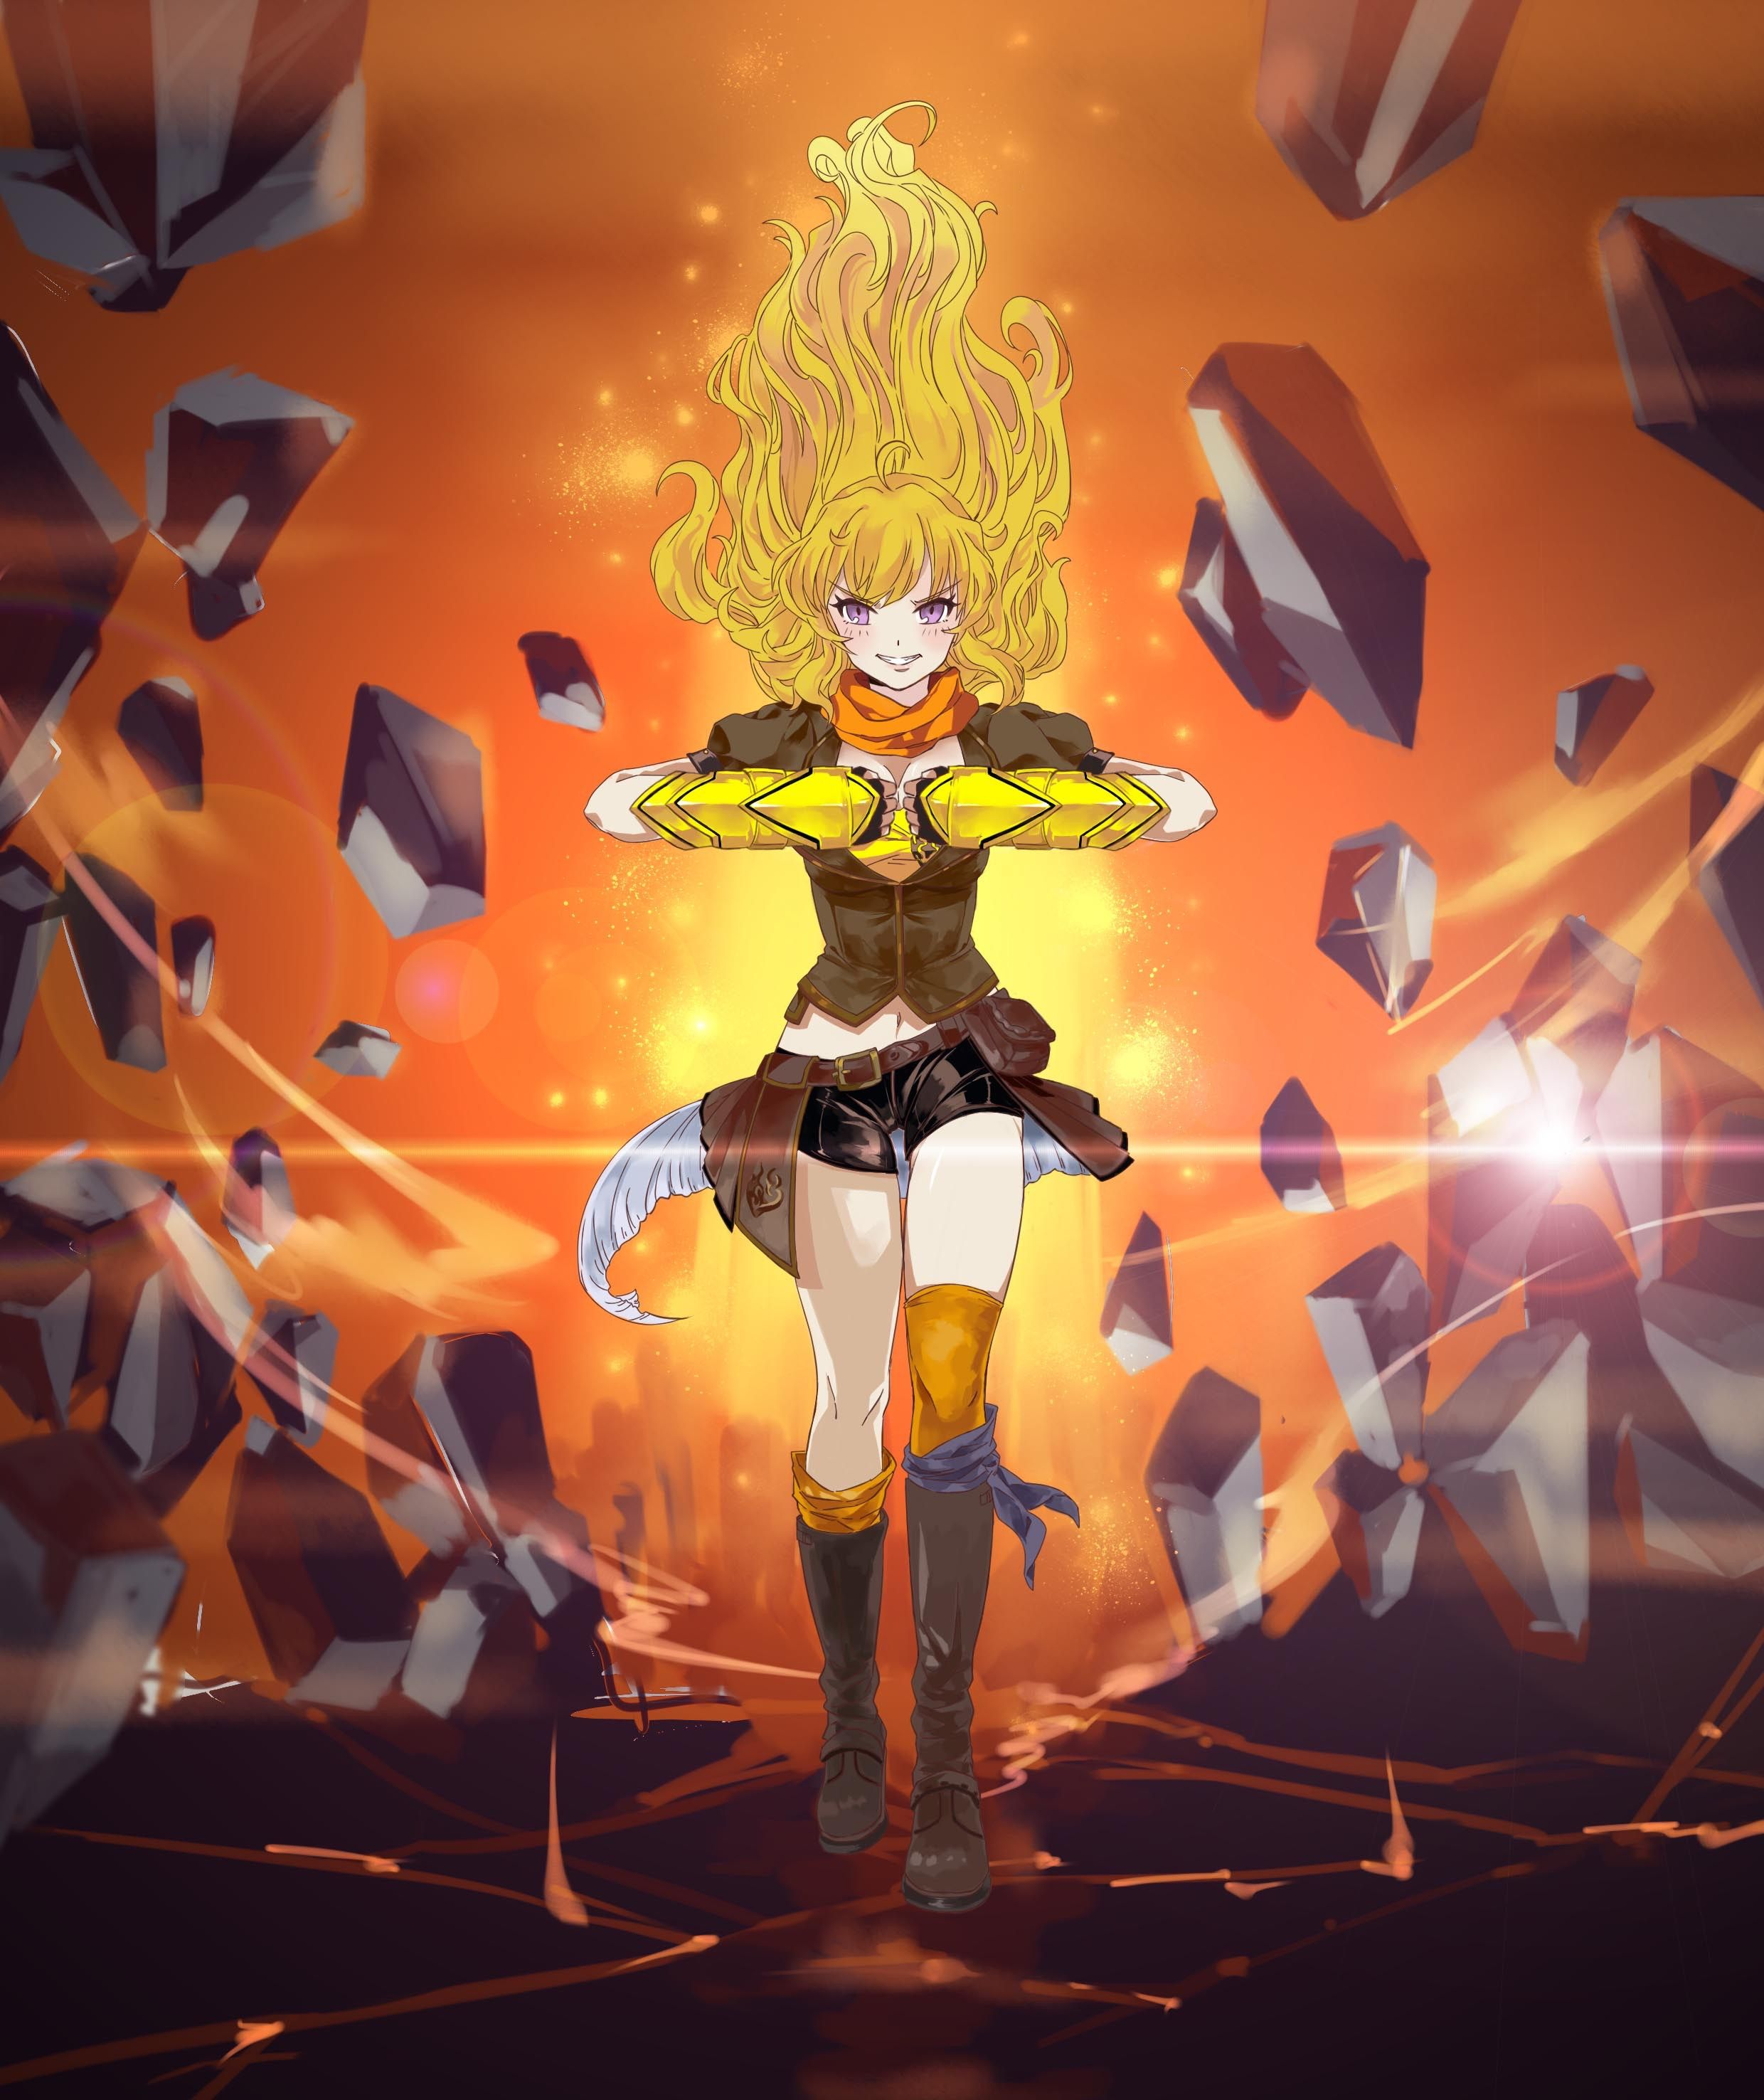 rwby Part 11 NdAGEF/100 Rwby, Rwby wallpaper, Rwby yang